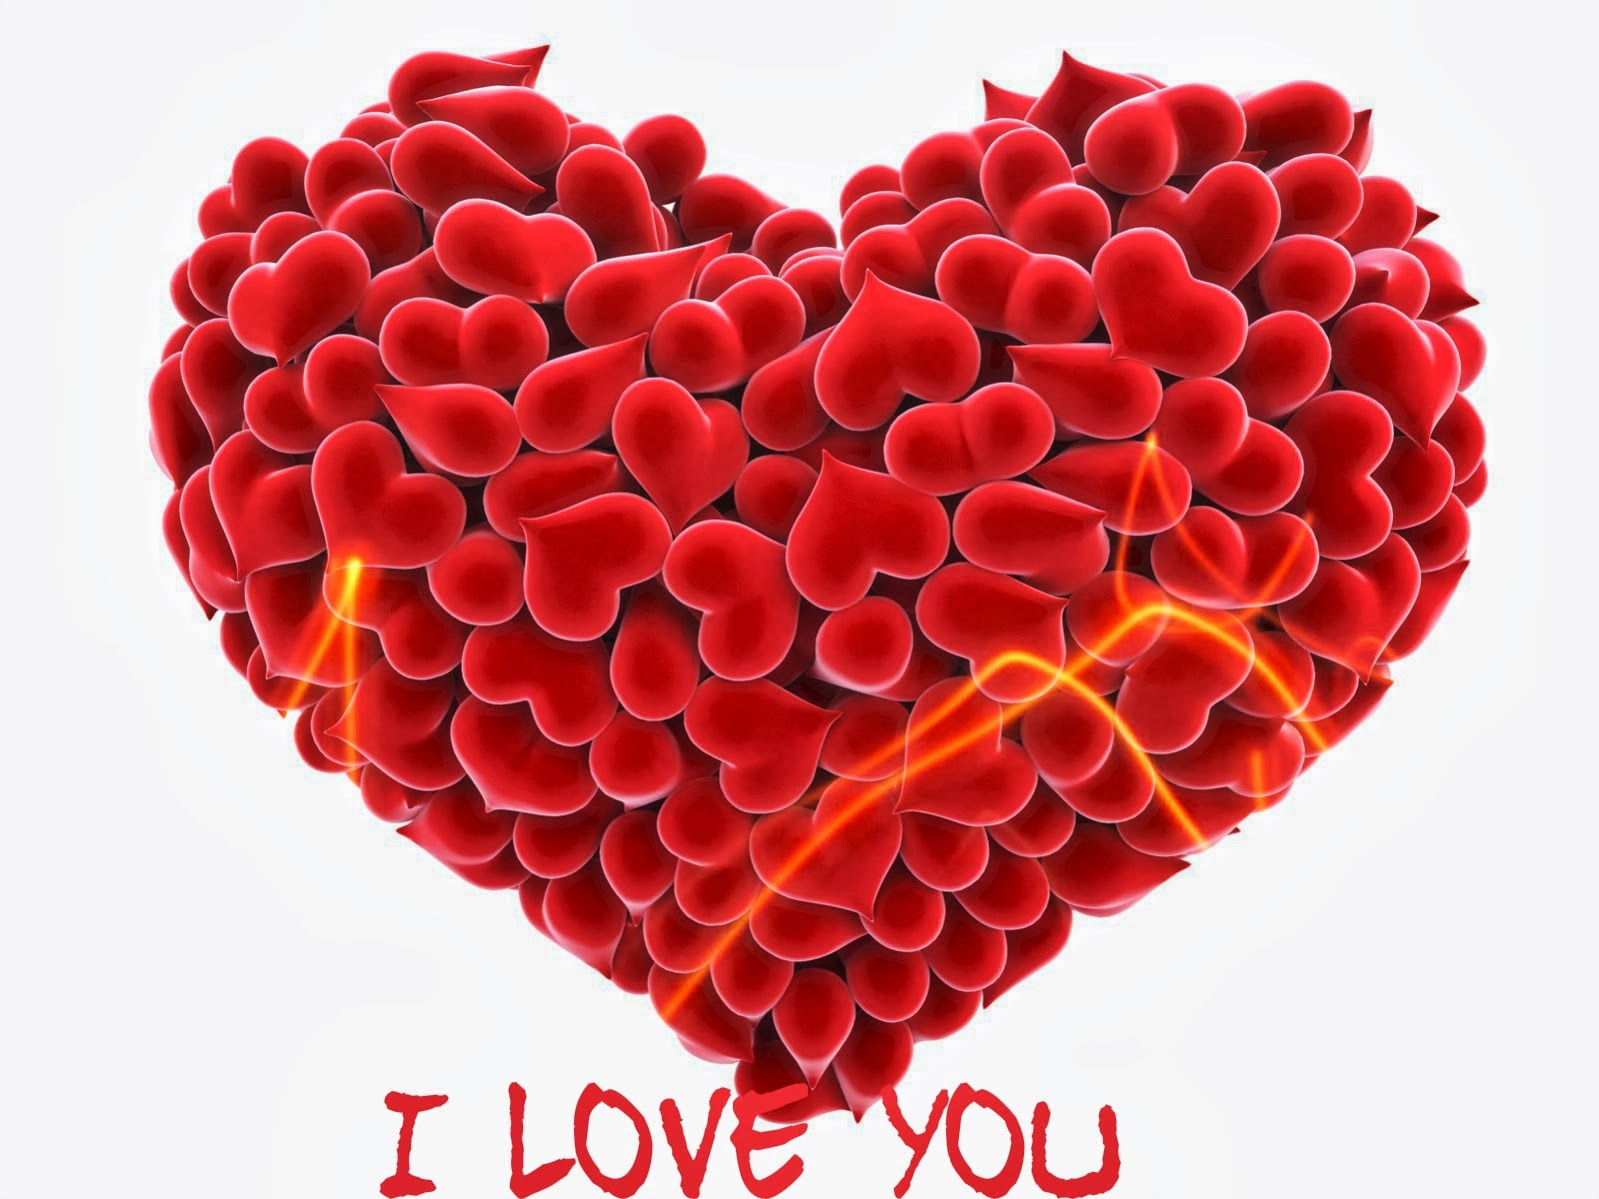 L Love U Hd Wallpaper : I Love You Wallpapers (67 Wallpapers) HD Wallpapers